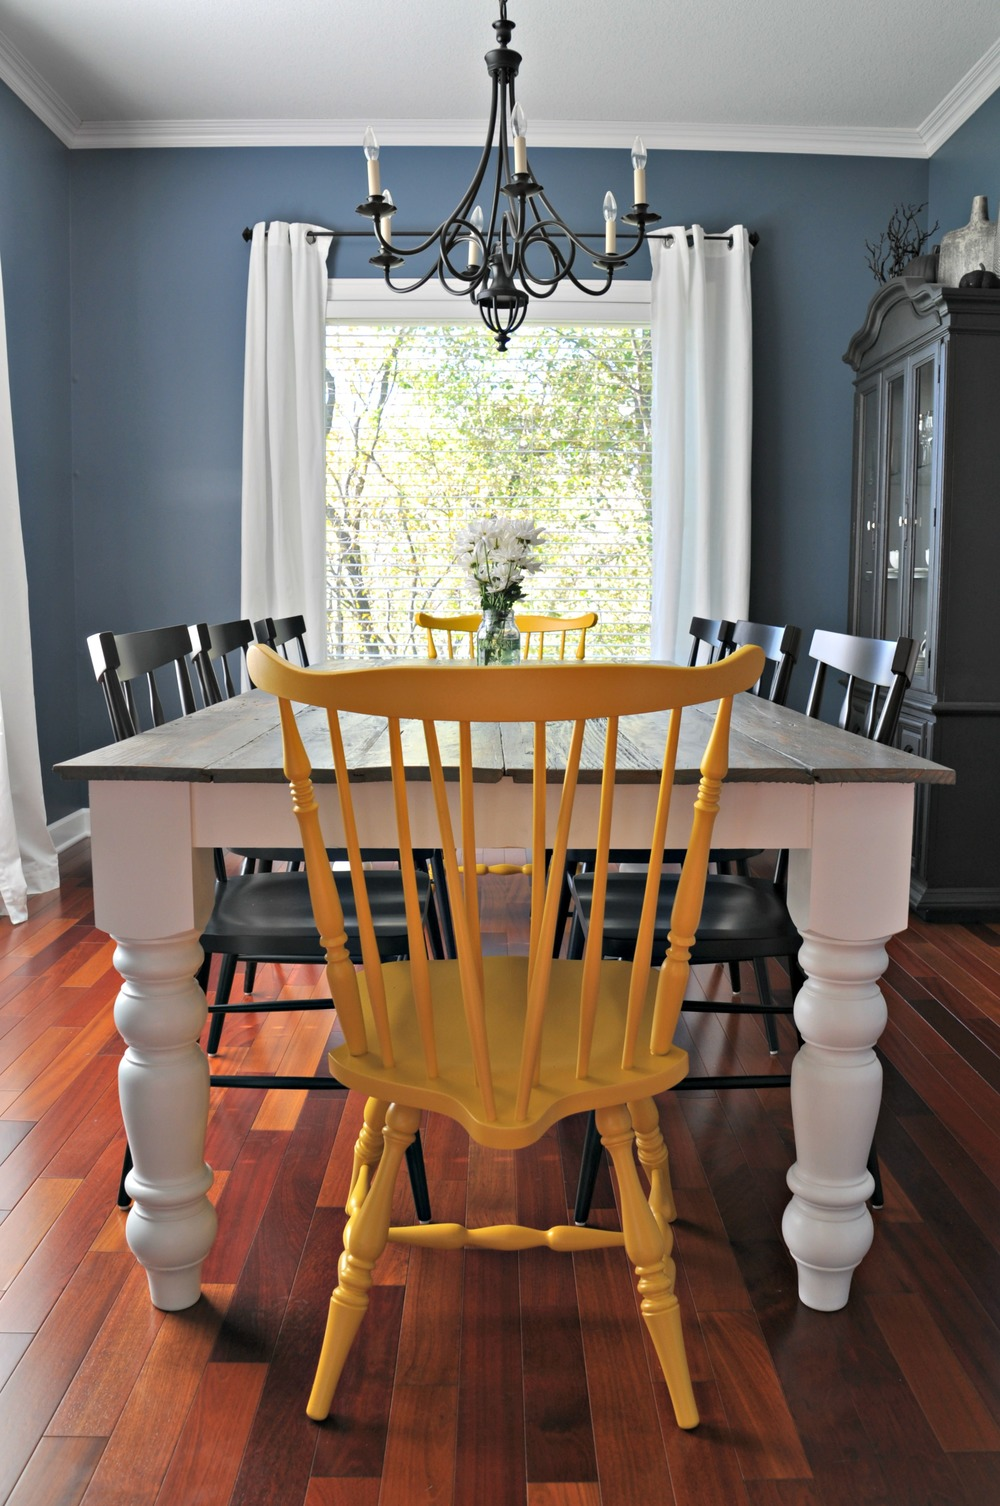 Free+Farmhouse+Dining+Table+Plans?format=1000w